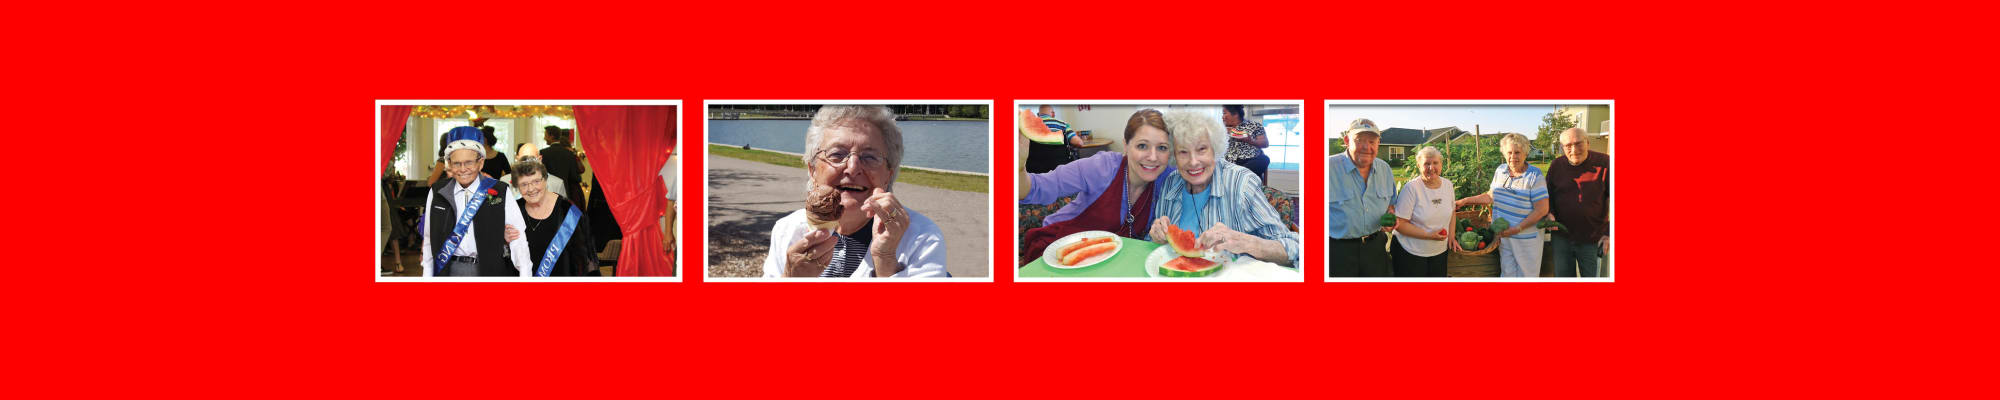 Assisted Living at Hawthorn Senior Living in Vancouver, Washington